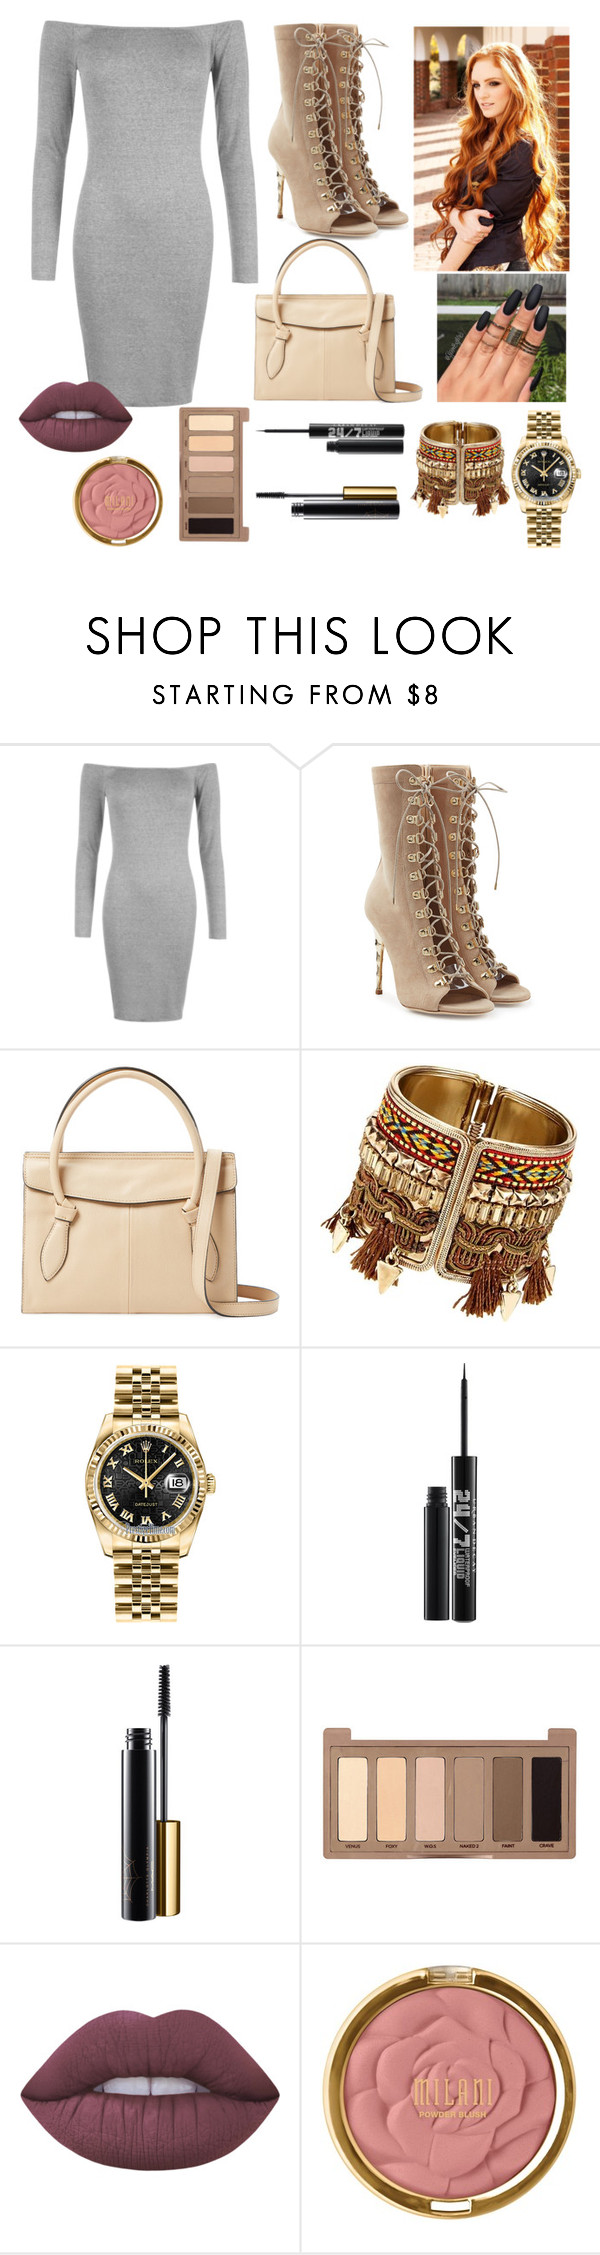 """""""OOTD 15"""" by emma-rose-t ❤ liked on Polyvore featuring WearAll, Balmain, Foley + Corinna, Rolex, Urban Decay, Lime Crime and Milani"""